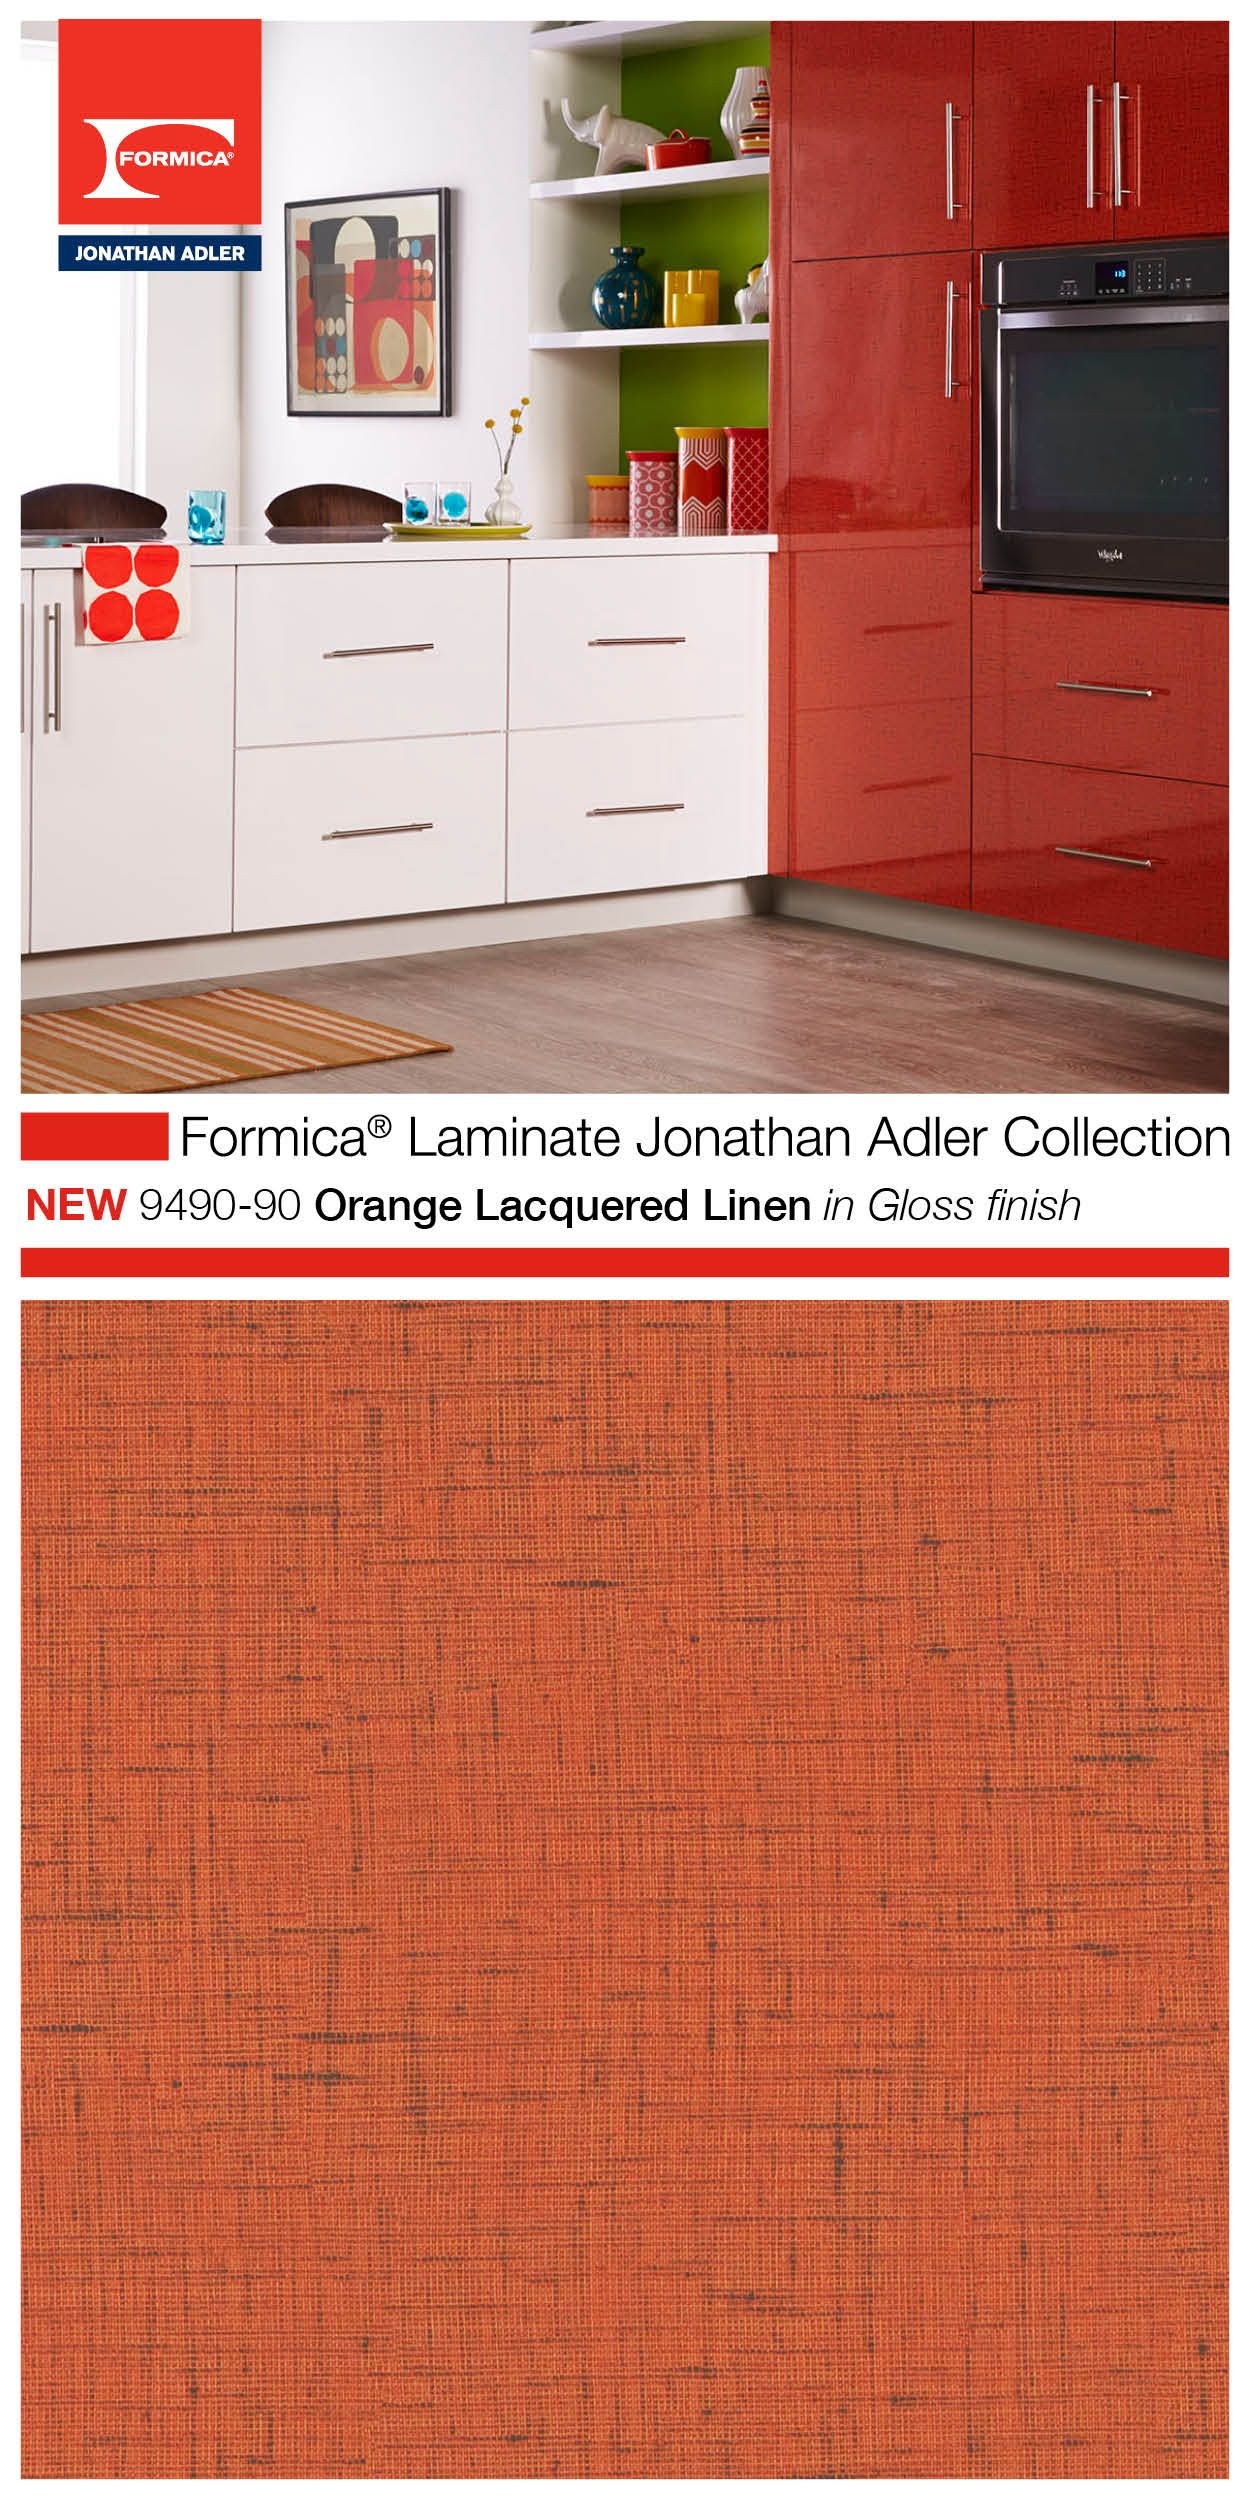 Part Of The Highly Aned Formica Laminate Jonathan Adler Collection 9490 90 Orange Lacquered Linen In Gloss Finish Is Versatile And Usable For Many